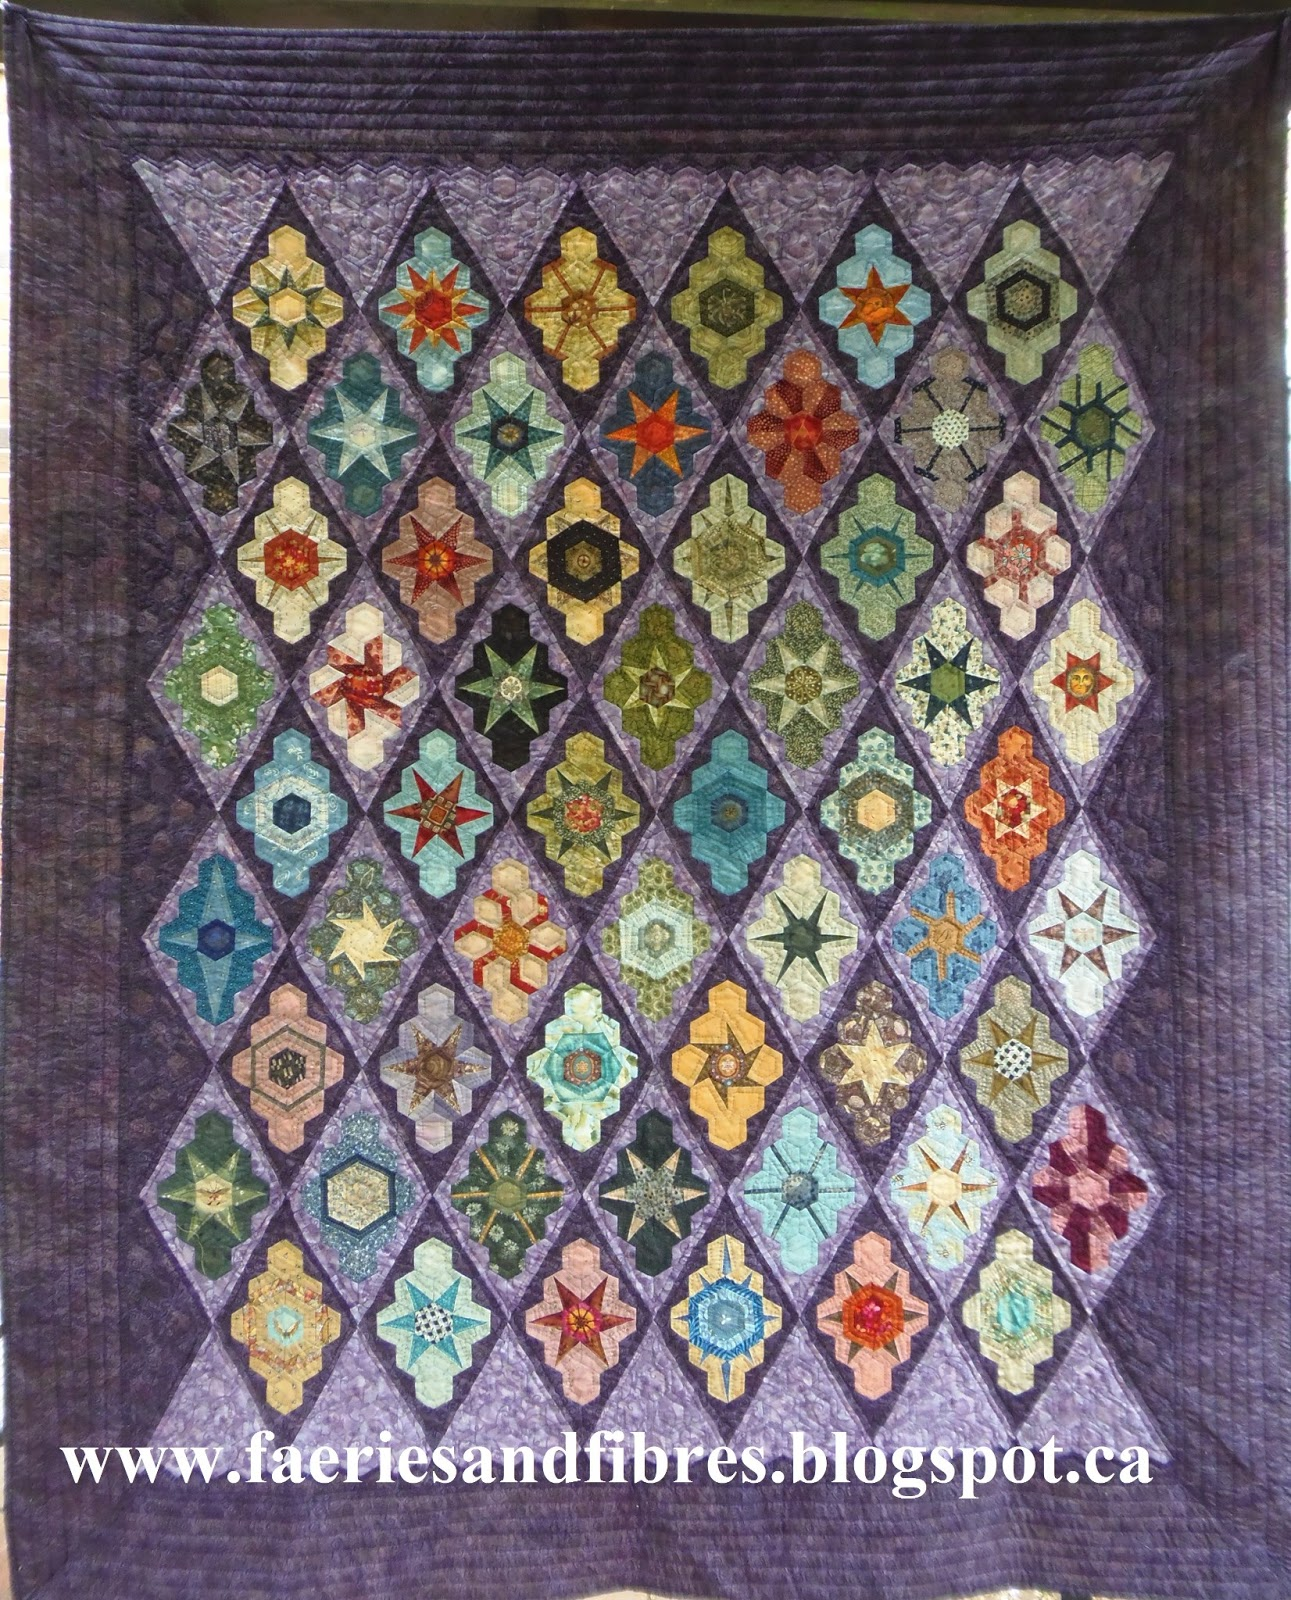 Faeries and Fibres: Cherry Blossom Quilt pattern, hexagon fun and three more nine patches